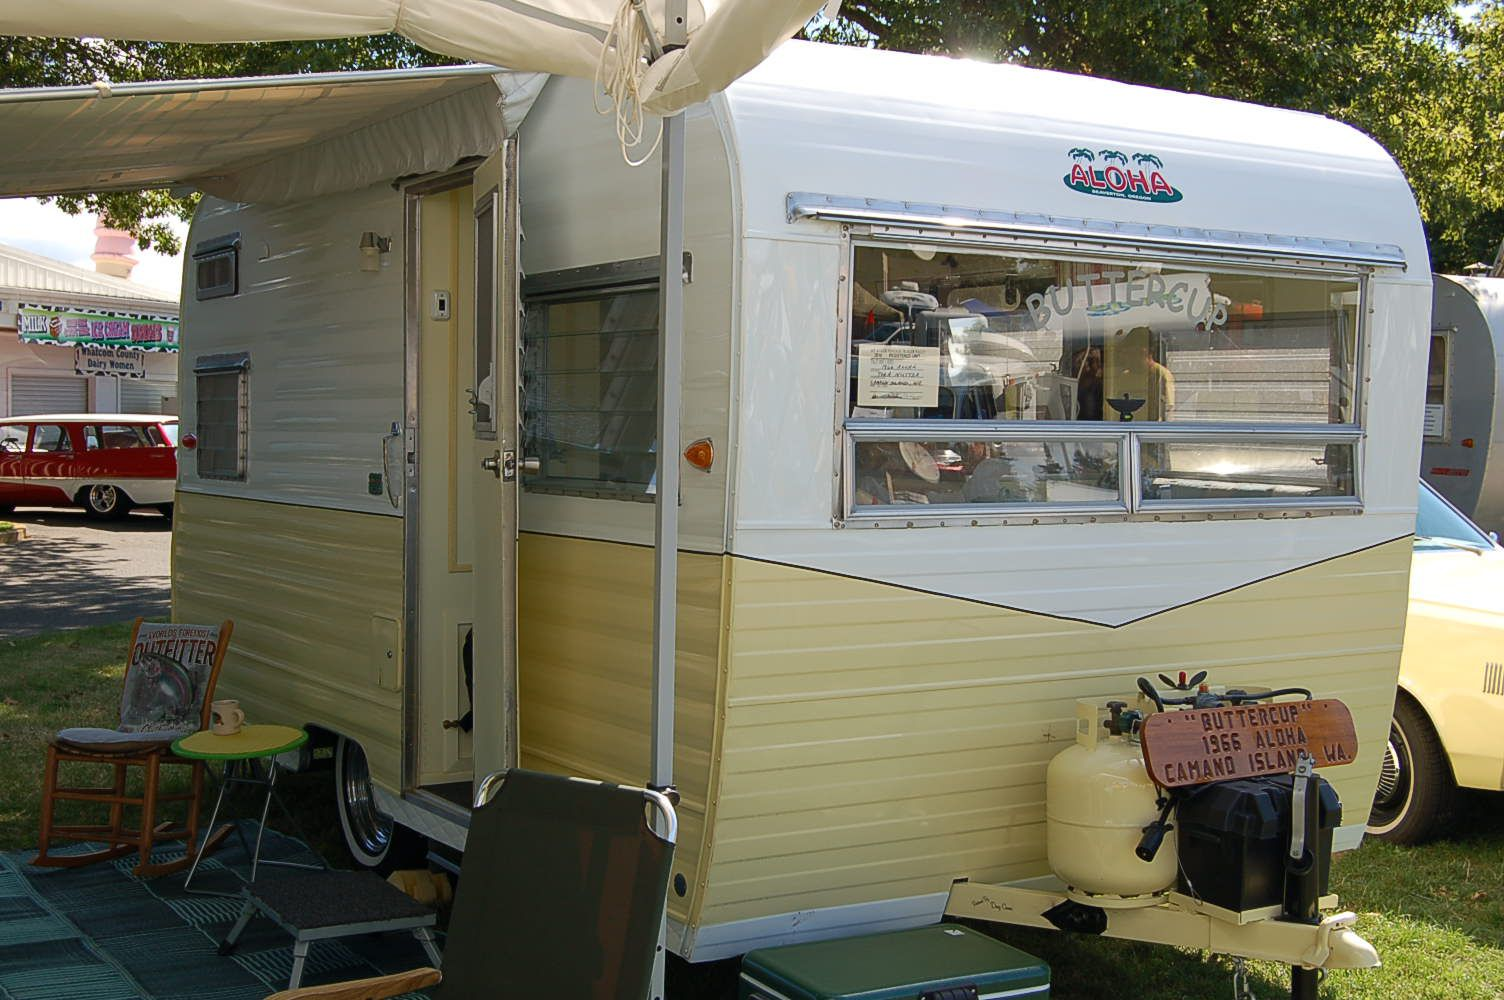 Vintage Aloha Trailer Pictures And History From Oldtrailer Com Vintage Aloha Vintage Camper Interior Tiny Camper Trailer